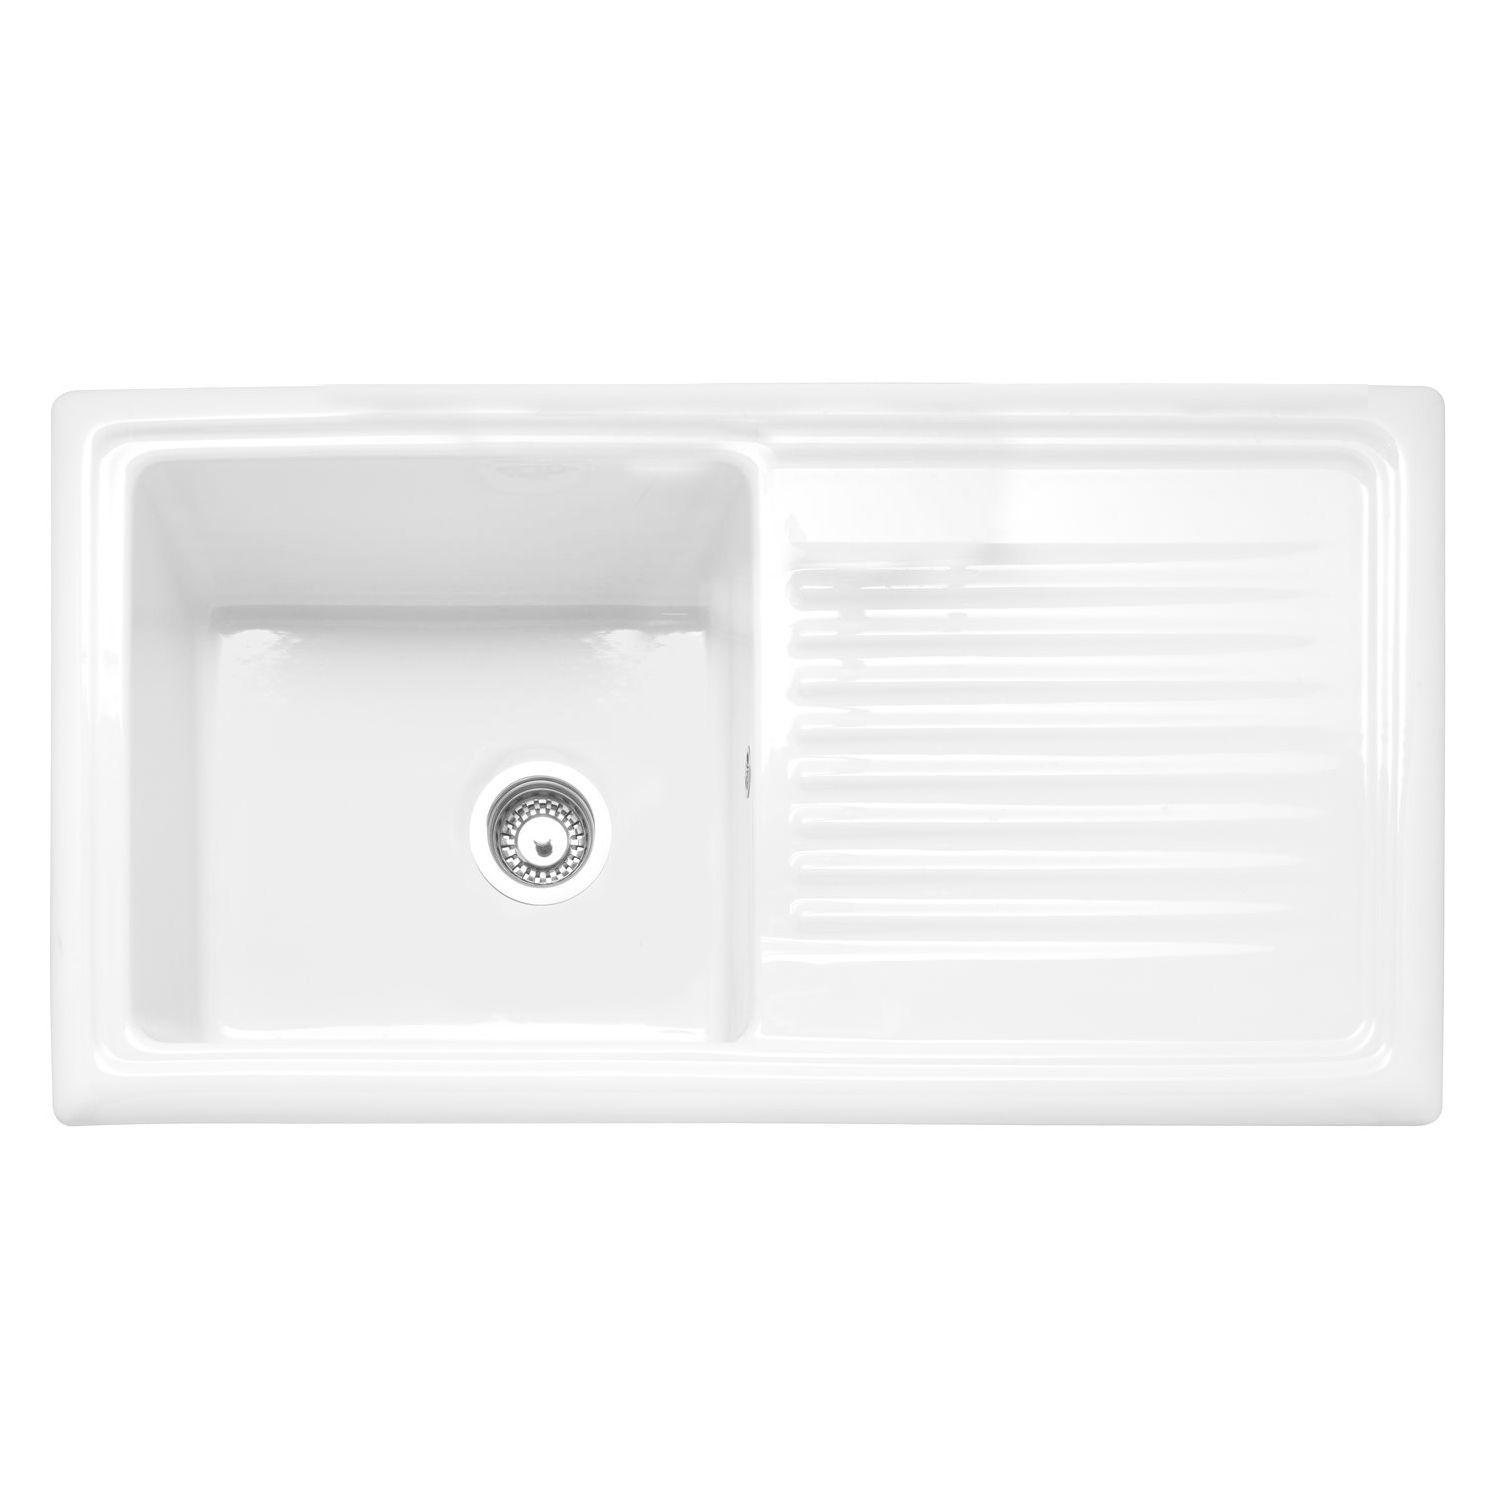 Caple Wiltshire 100 Single Bowl Inset Ceramic Kitchen Sink